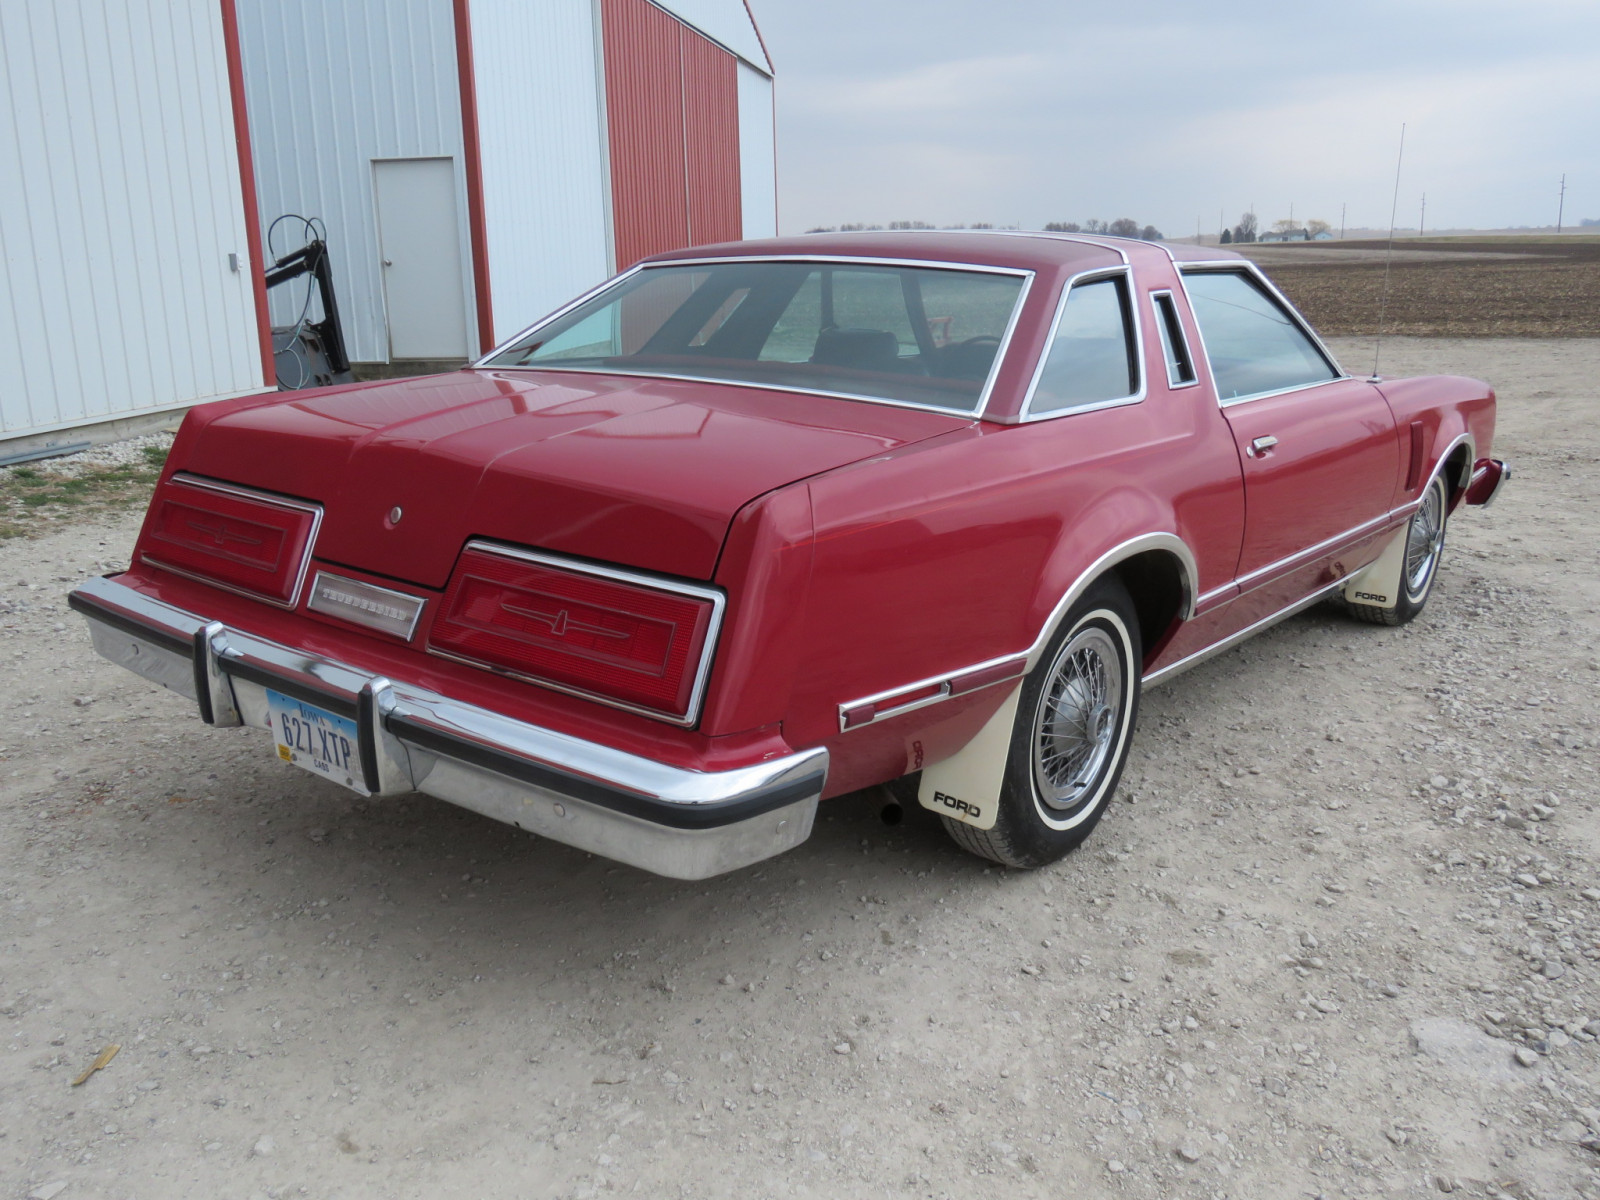 1979 Ford Thunderbird Coupe - Image 6